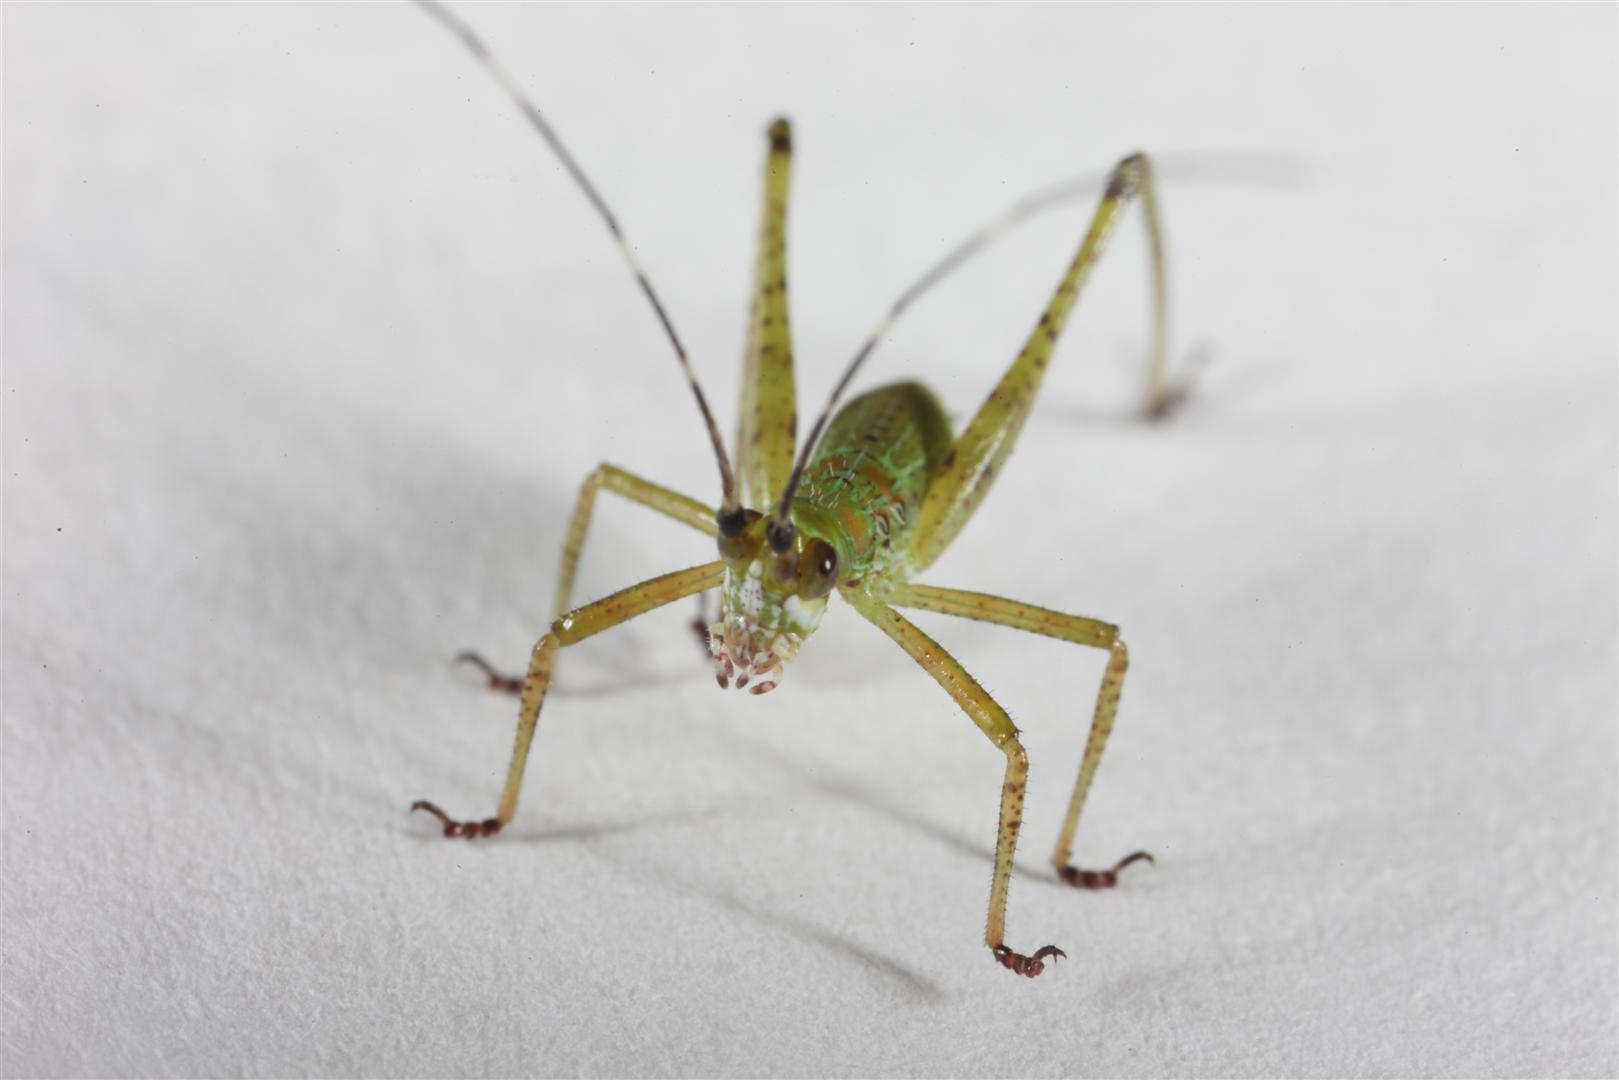 Green Cricket, Bug, Cricket, Green, Insect, HQ Photo